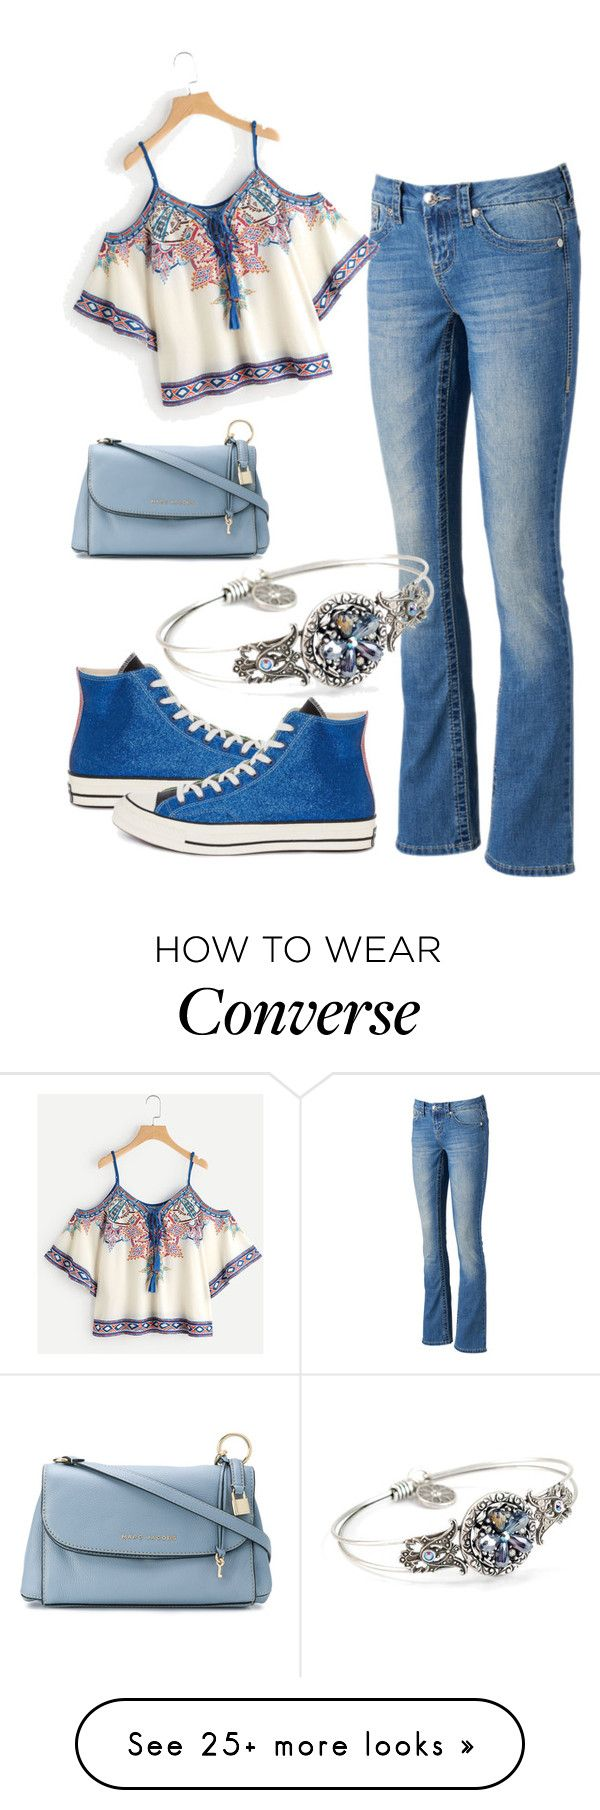 """""""Boho"""" by airsunshine on Polyvore featuring Seven7 Jeans, Converse, Sweet Romance and Marc Jacobs"""